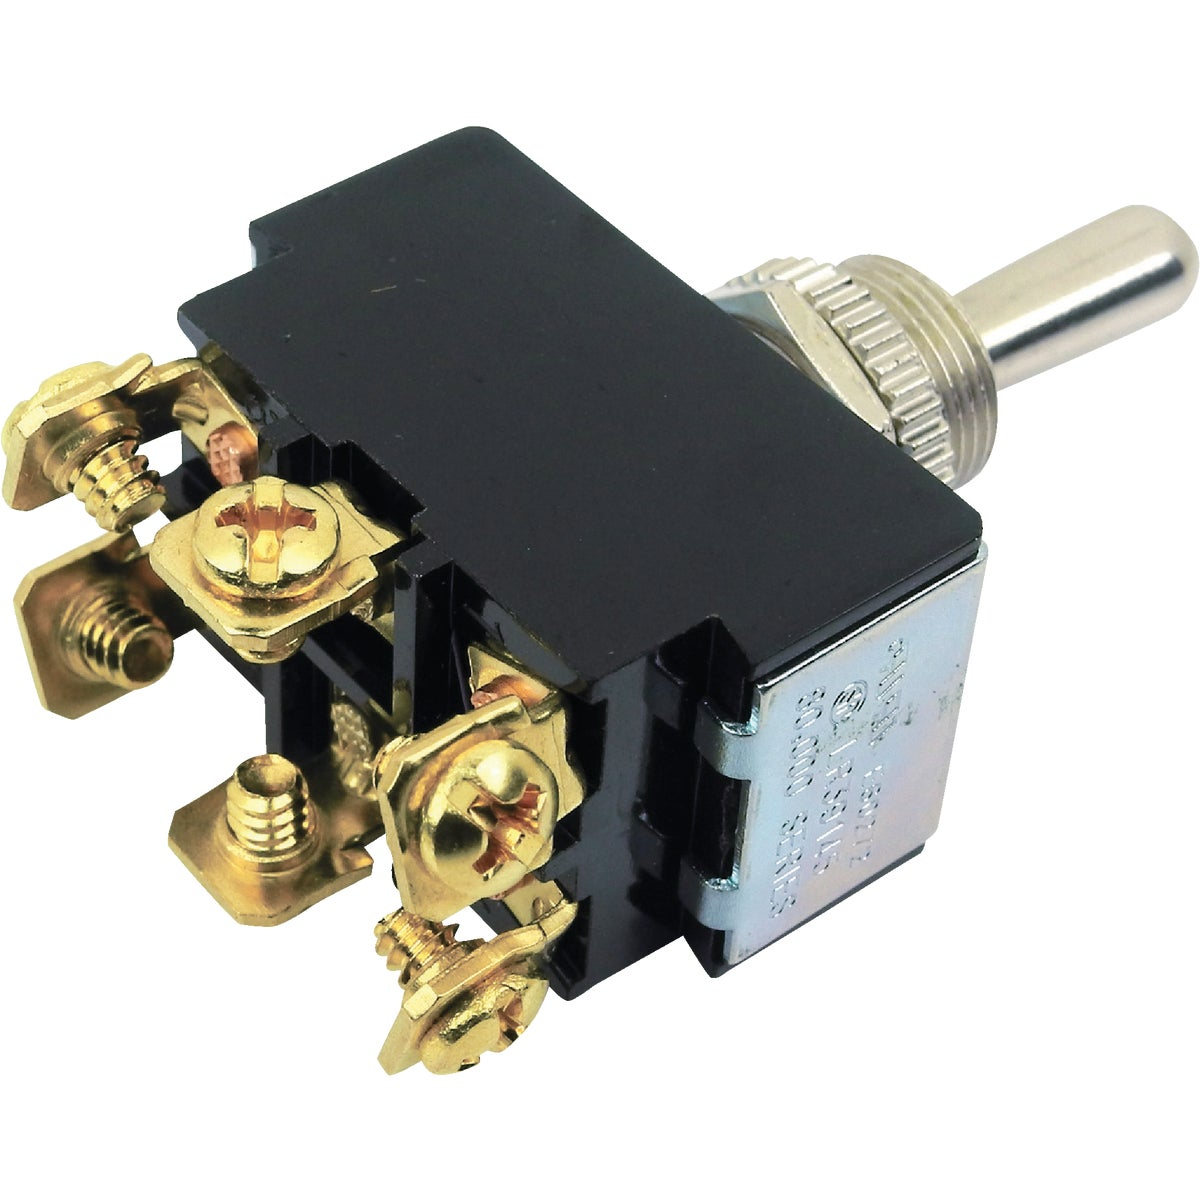 3POS TOGGLE SWITCH - 12141 by Seachoice Prod